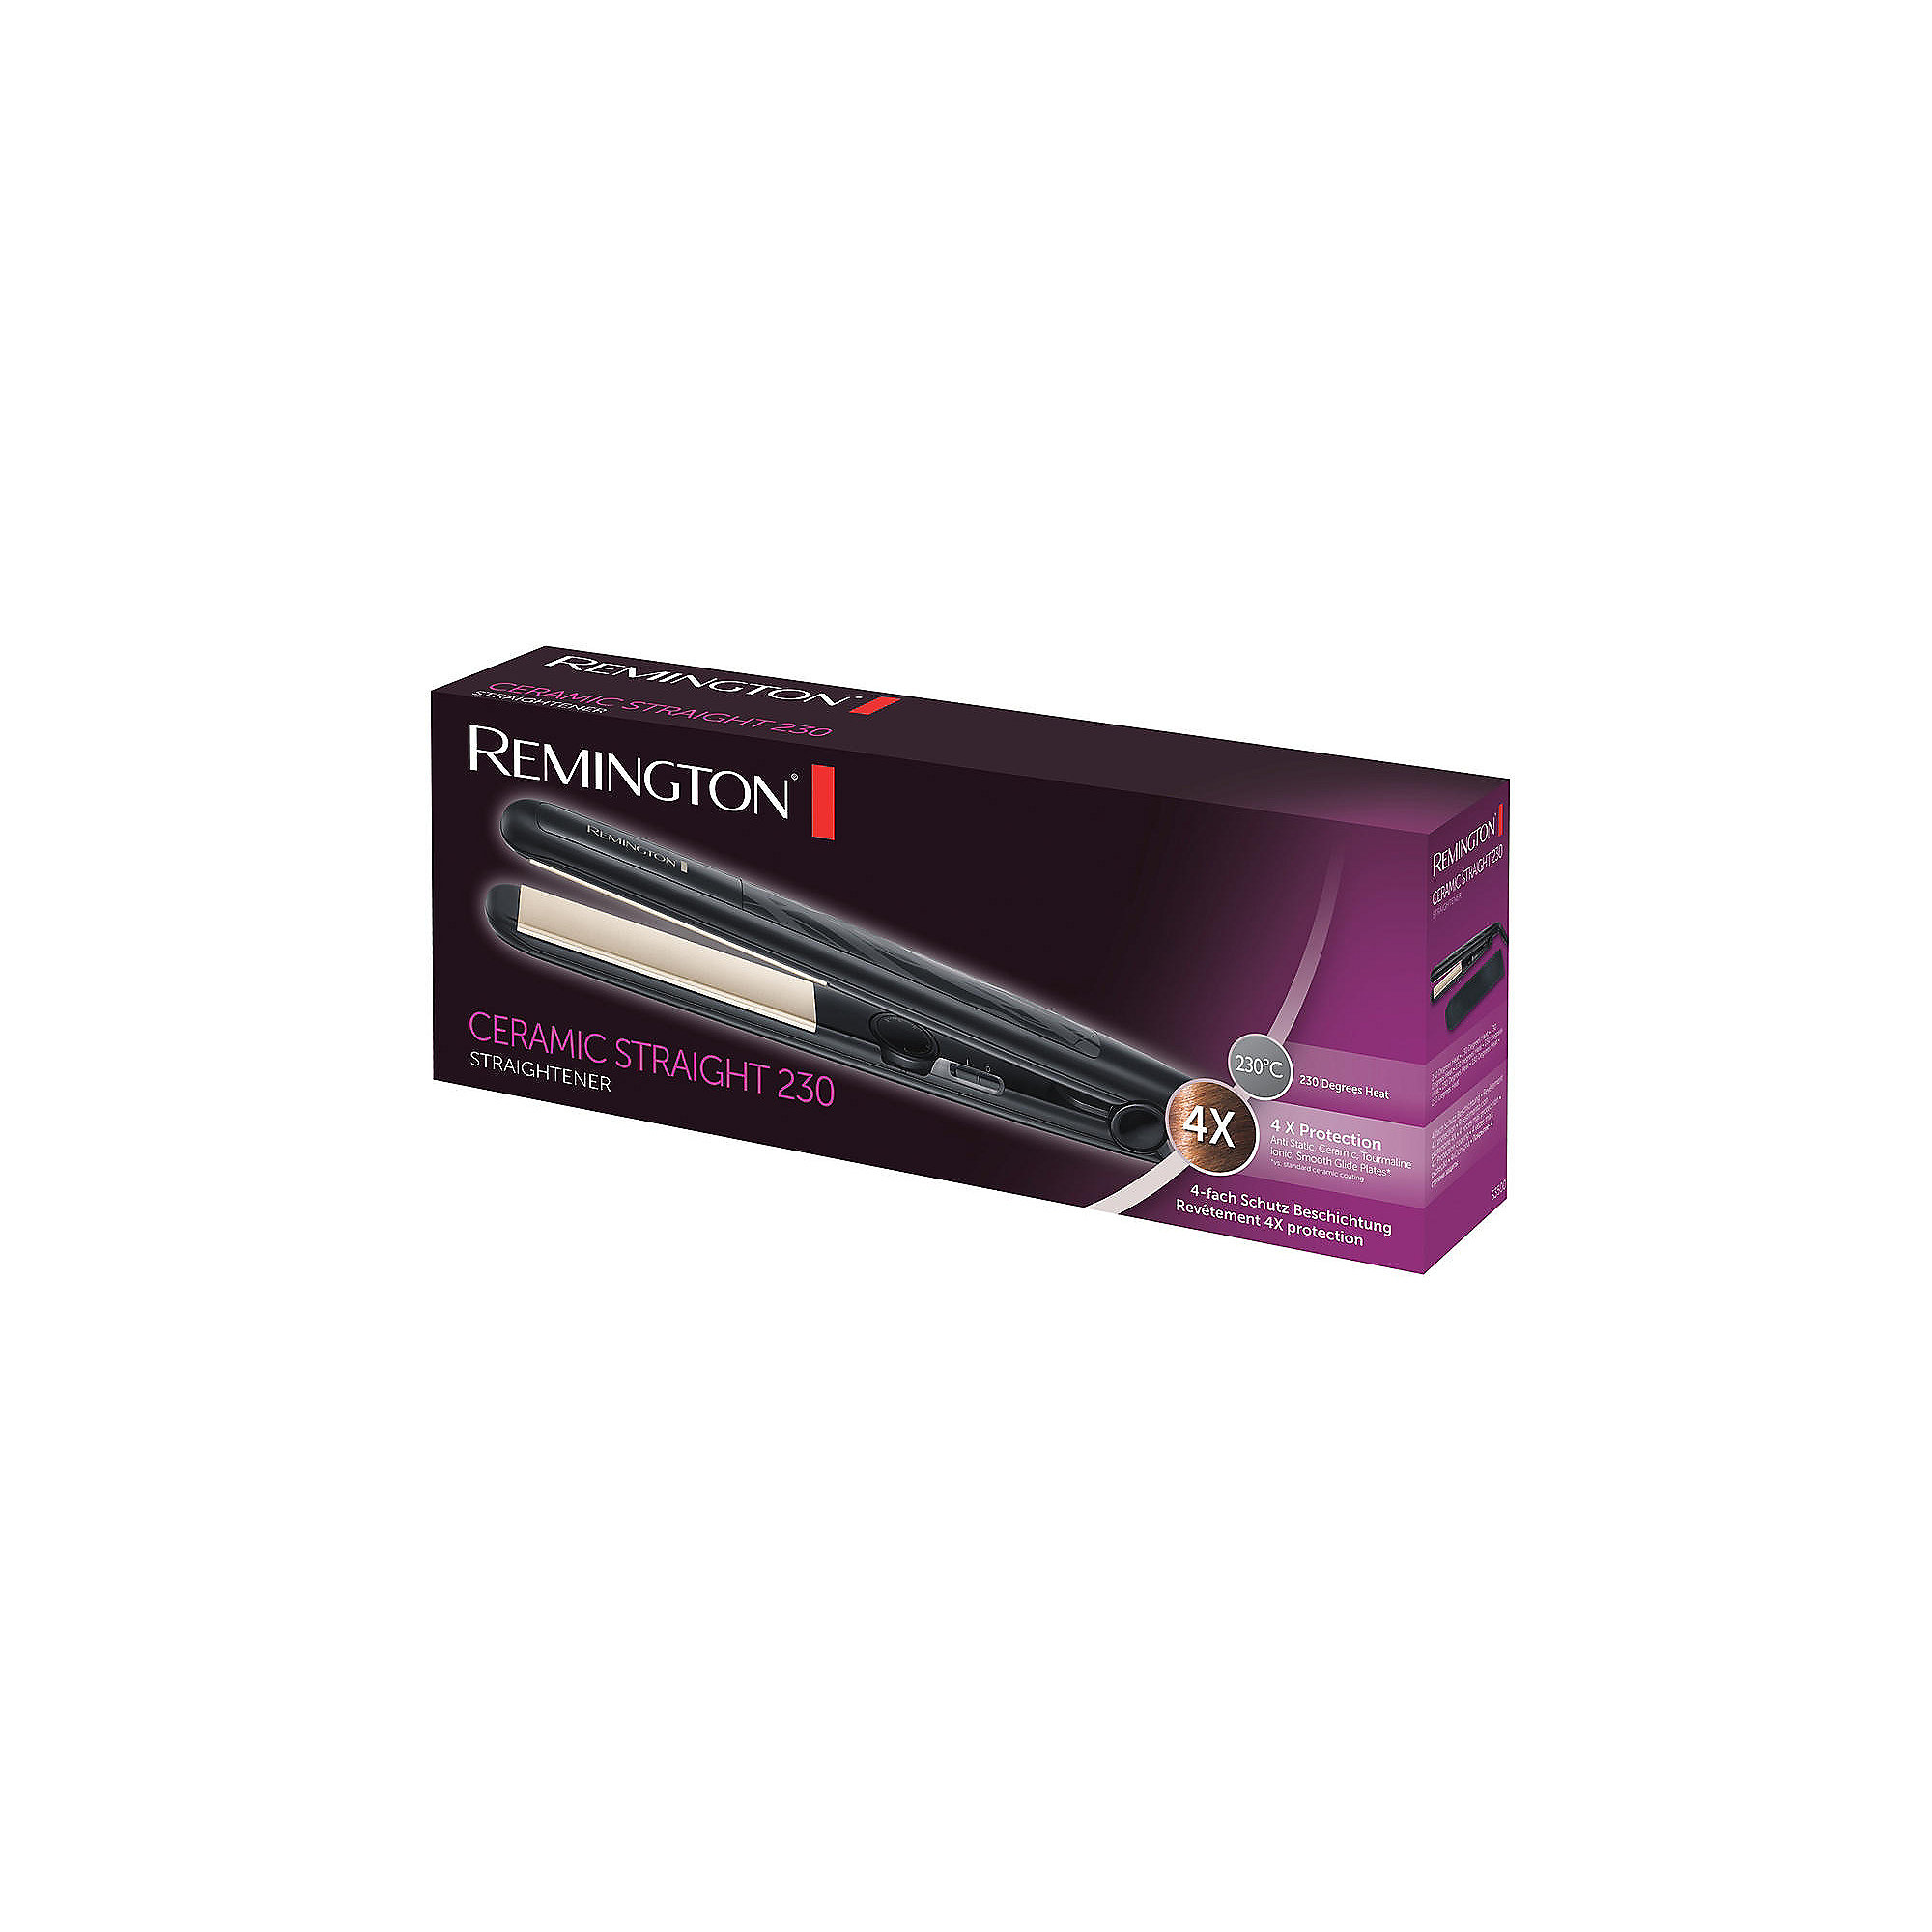 Remington S3500 Ceramic Straight Haarglätter